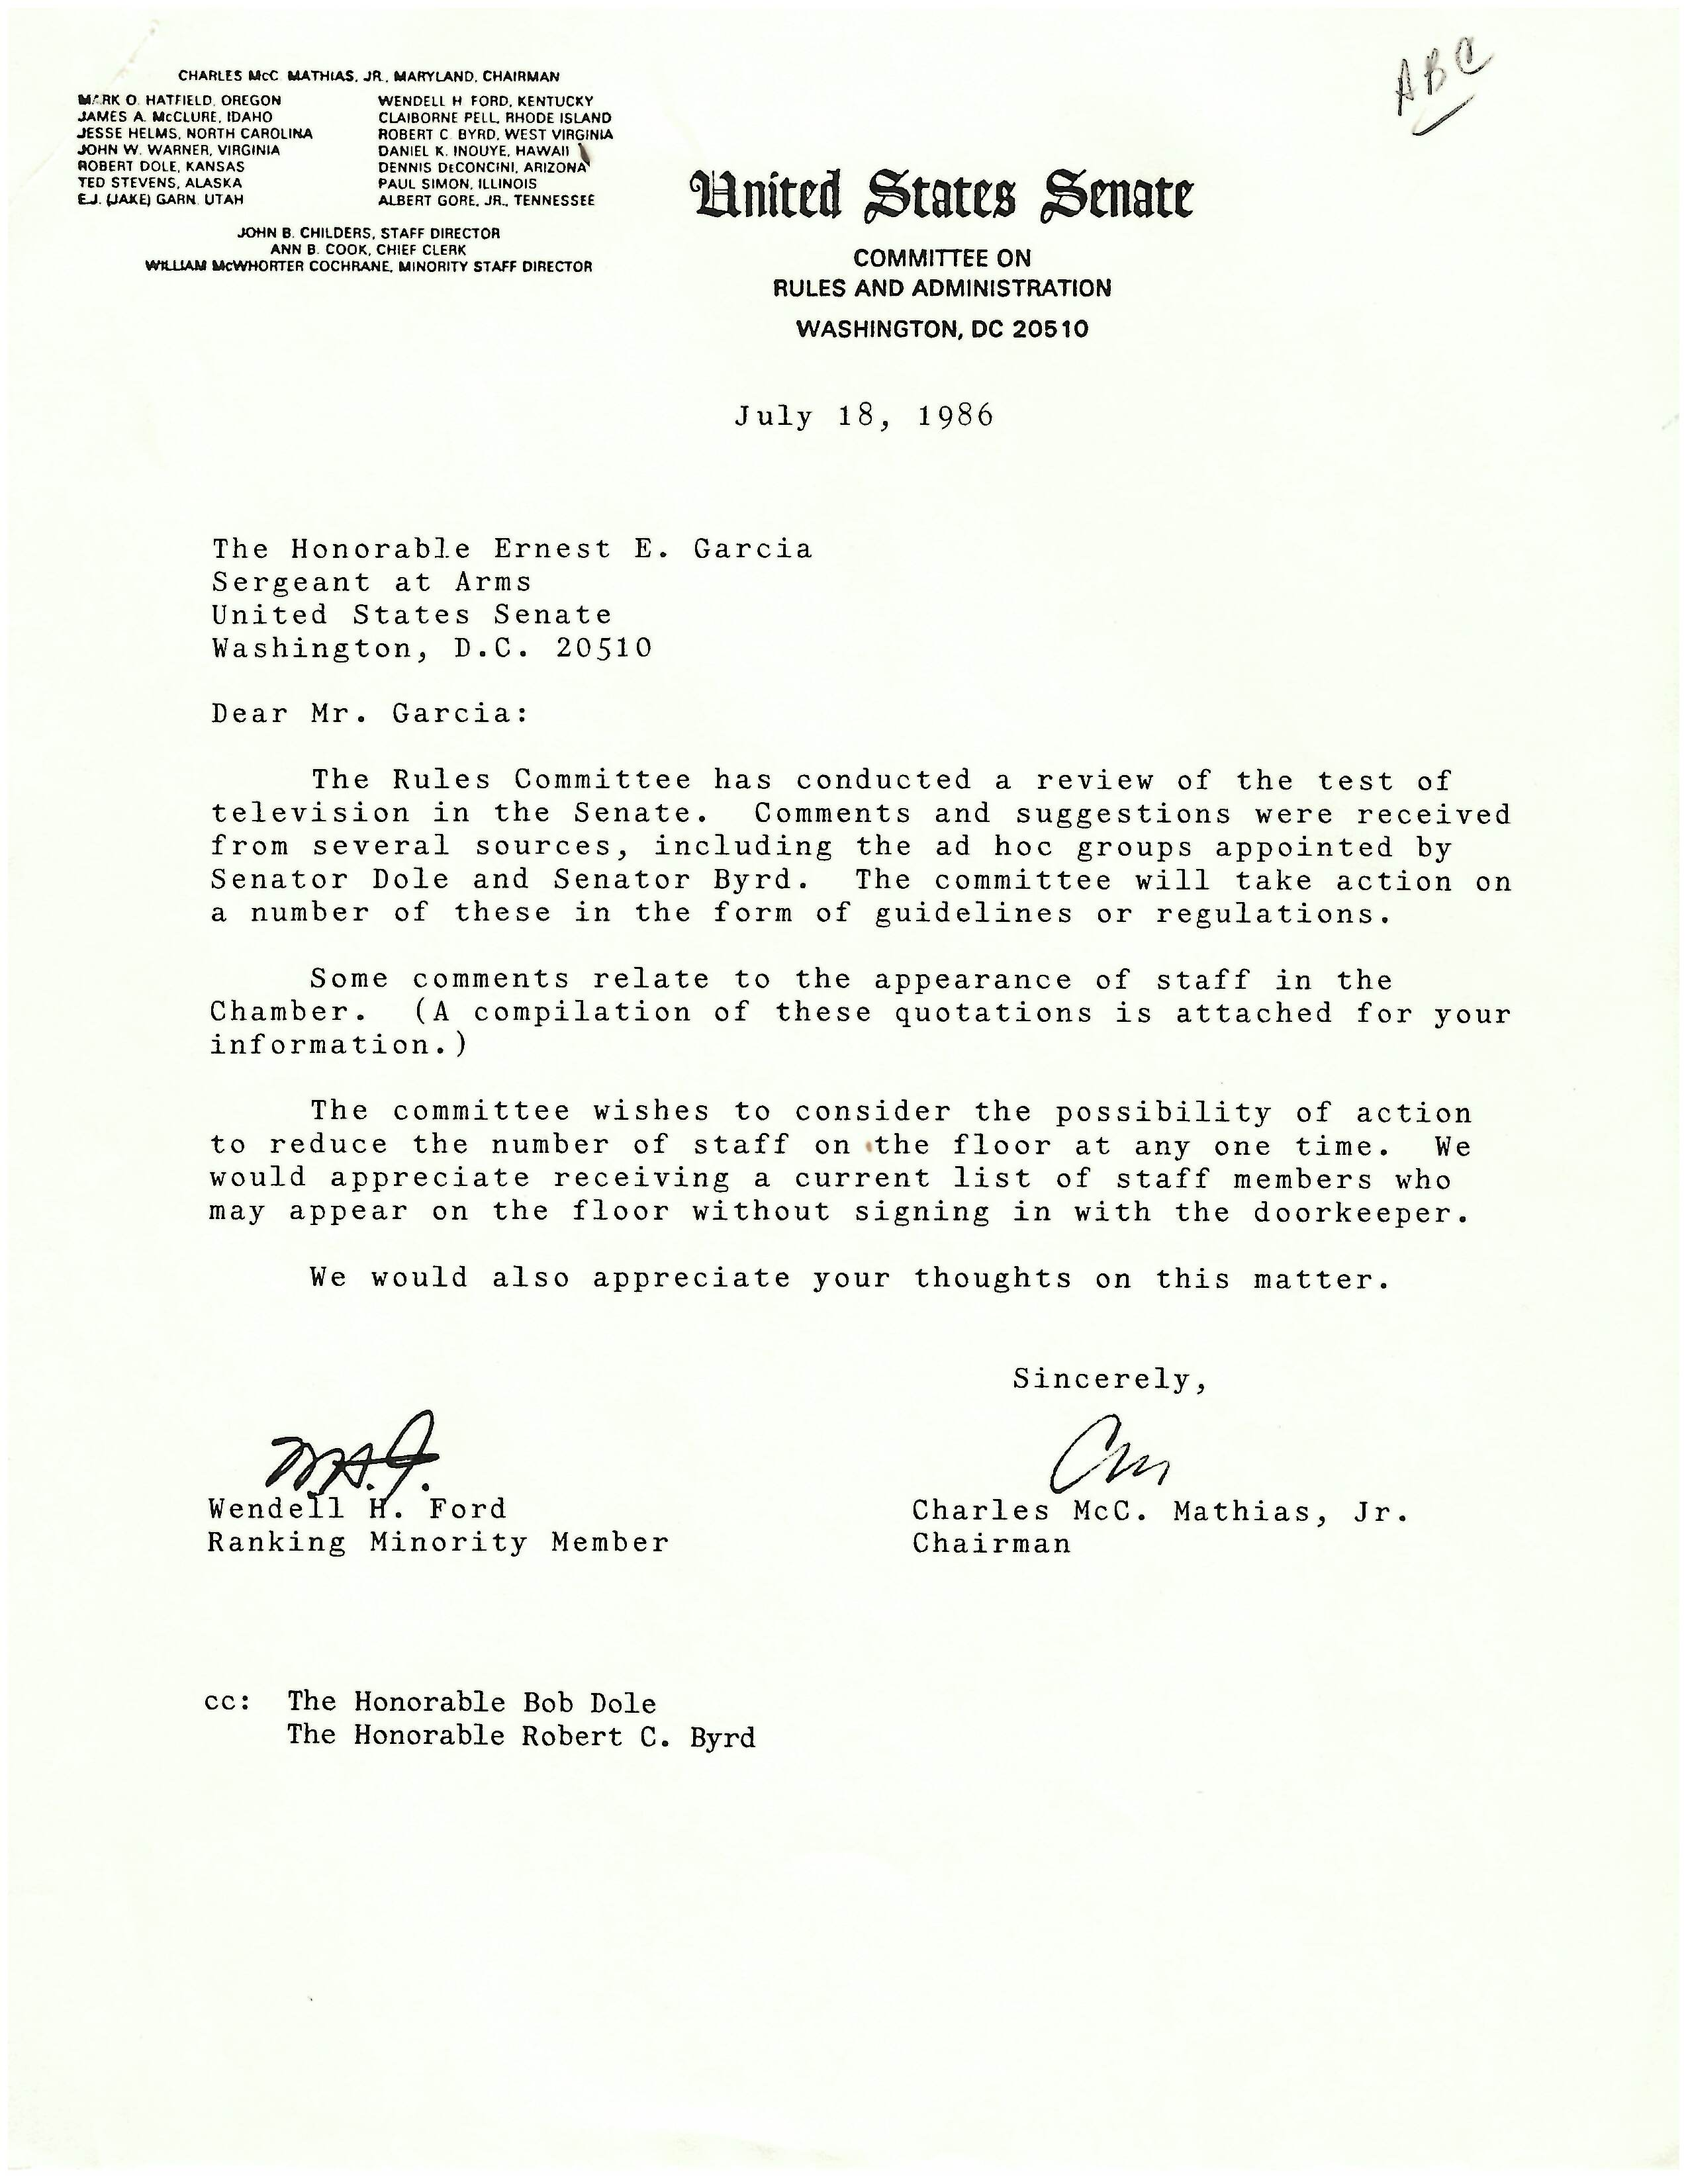 Letter to the Honorable Ernest E. Garcia, Sergeant at Arms, from Charles McC. Mathias, Jr., Chairman of the Rules Committee, July 18, 1986, page 1. (Records of the U.S. Senate, National Archives)